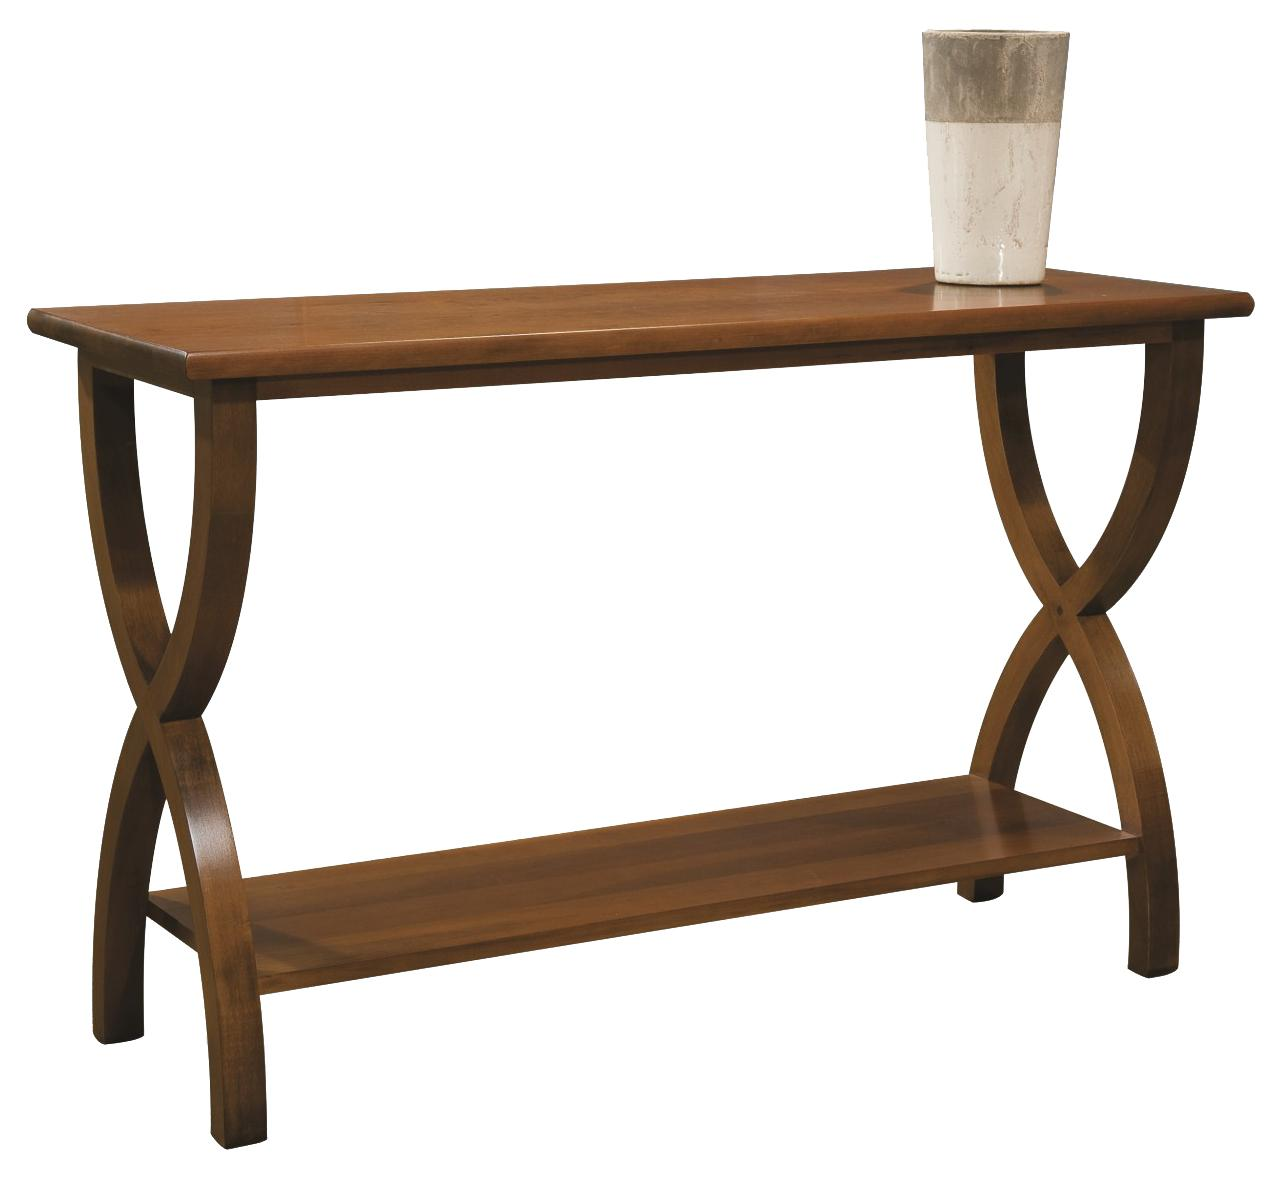 Occasional Tables Durham Transitional Sofa Back Table by Durham at Stoney Creek Furniture